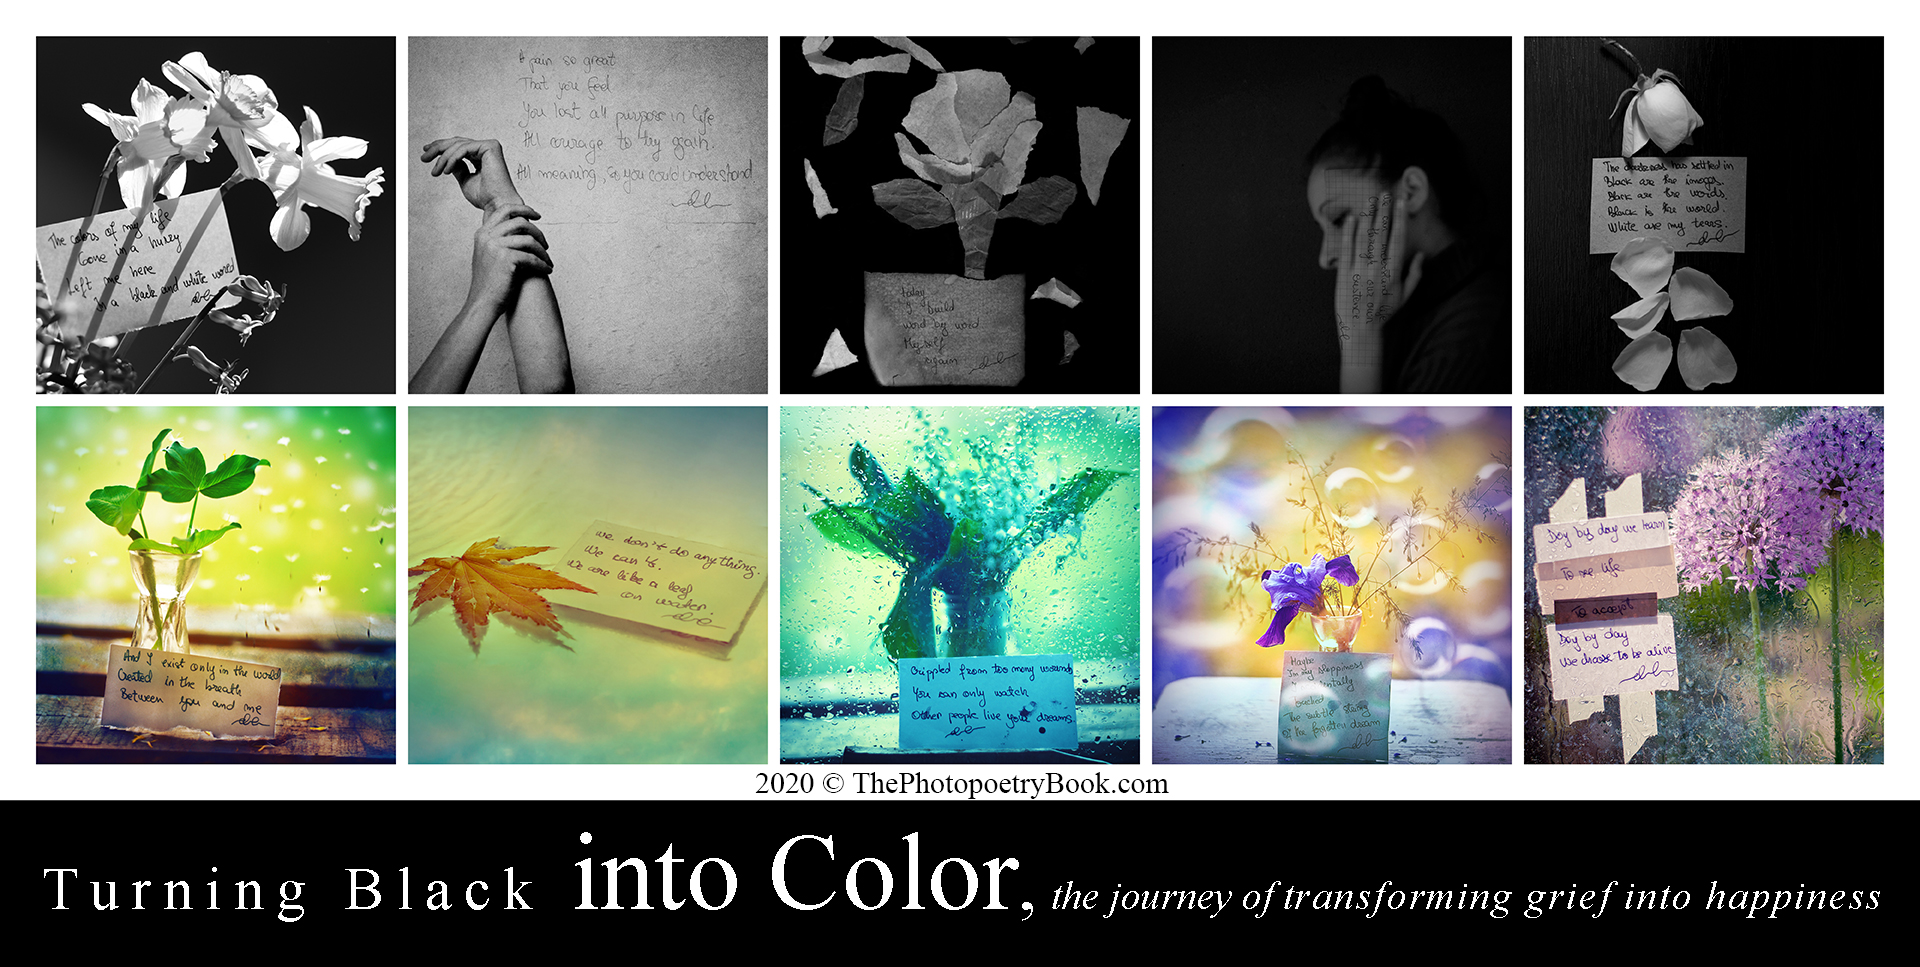 Turning Black into Color - turning grief into happiness